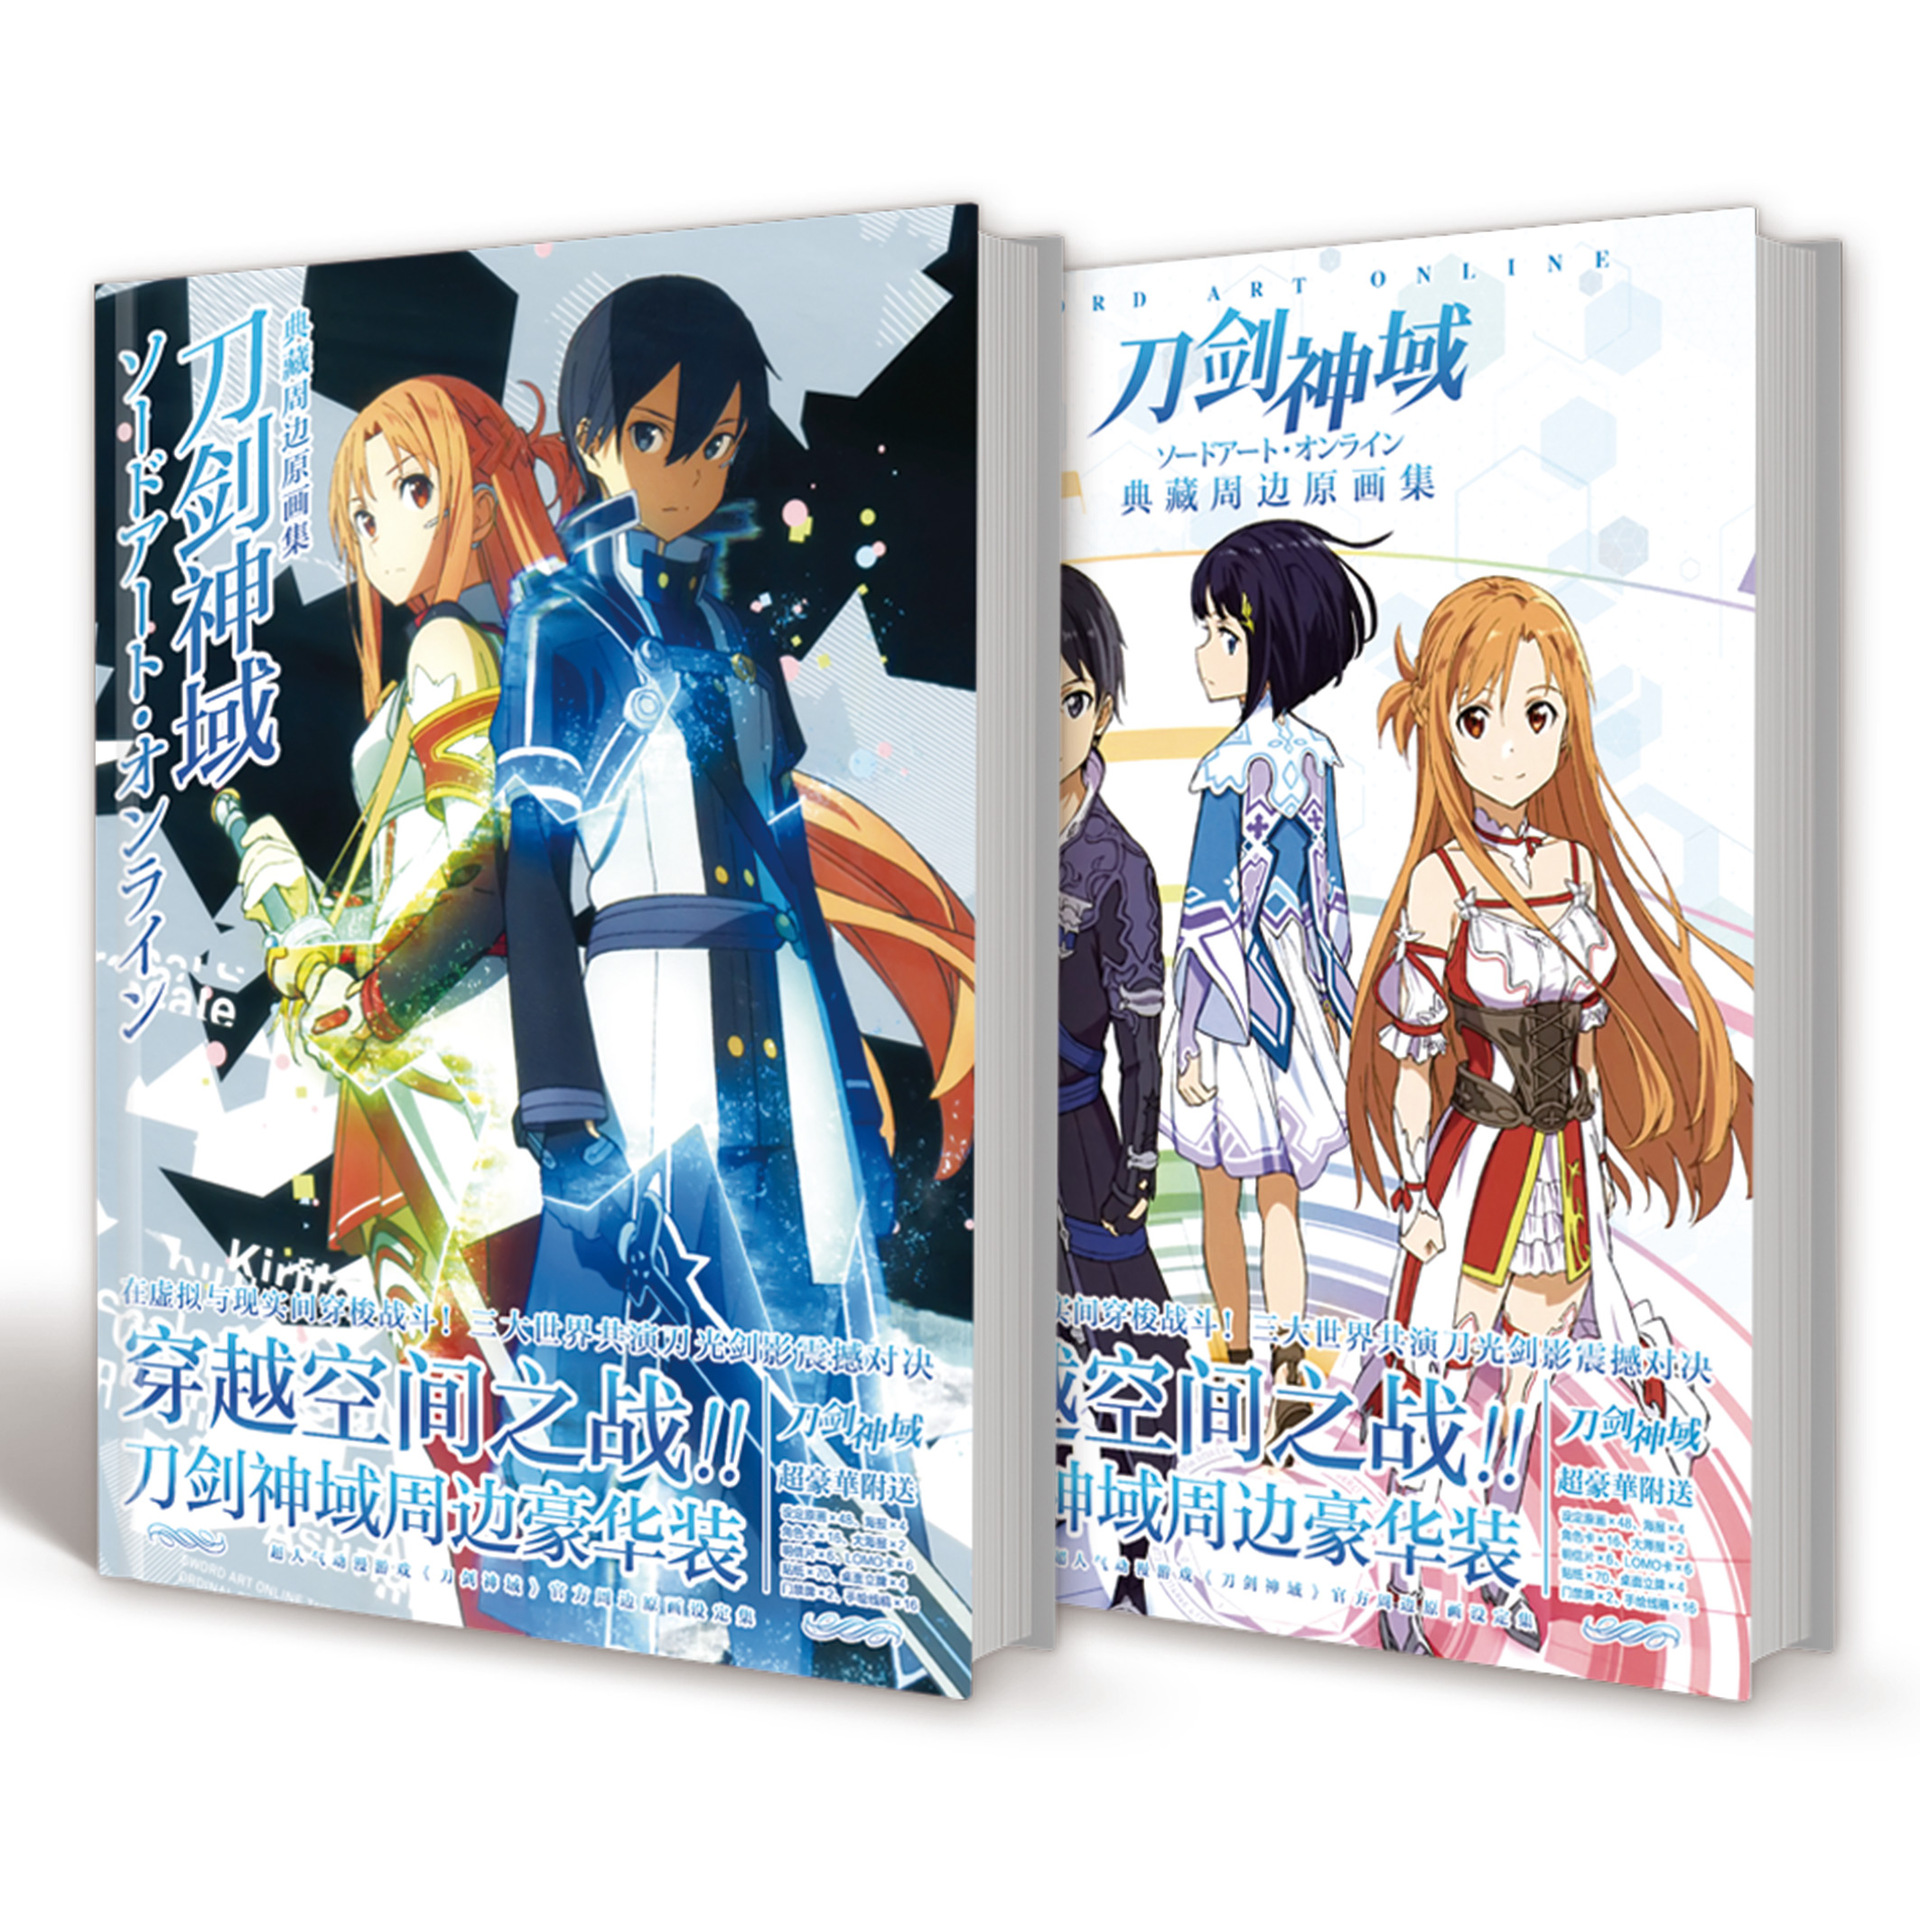 Anime Gift Box Sword Art Online Colorful Art Book Limited Edition Collector's Edition Picture Album Paintings